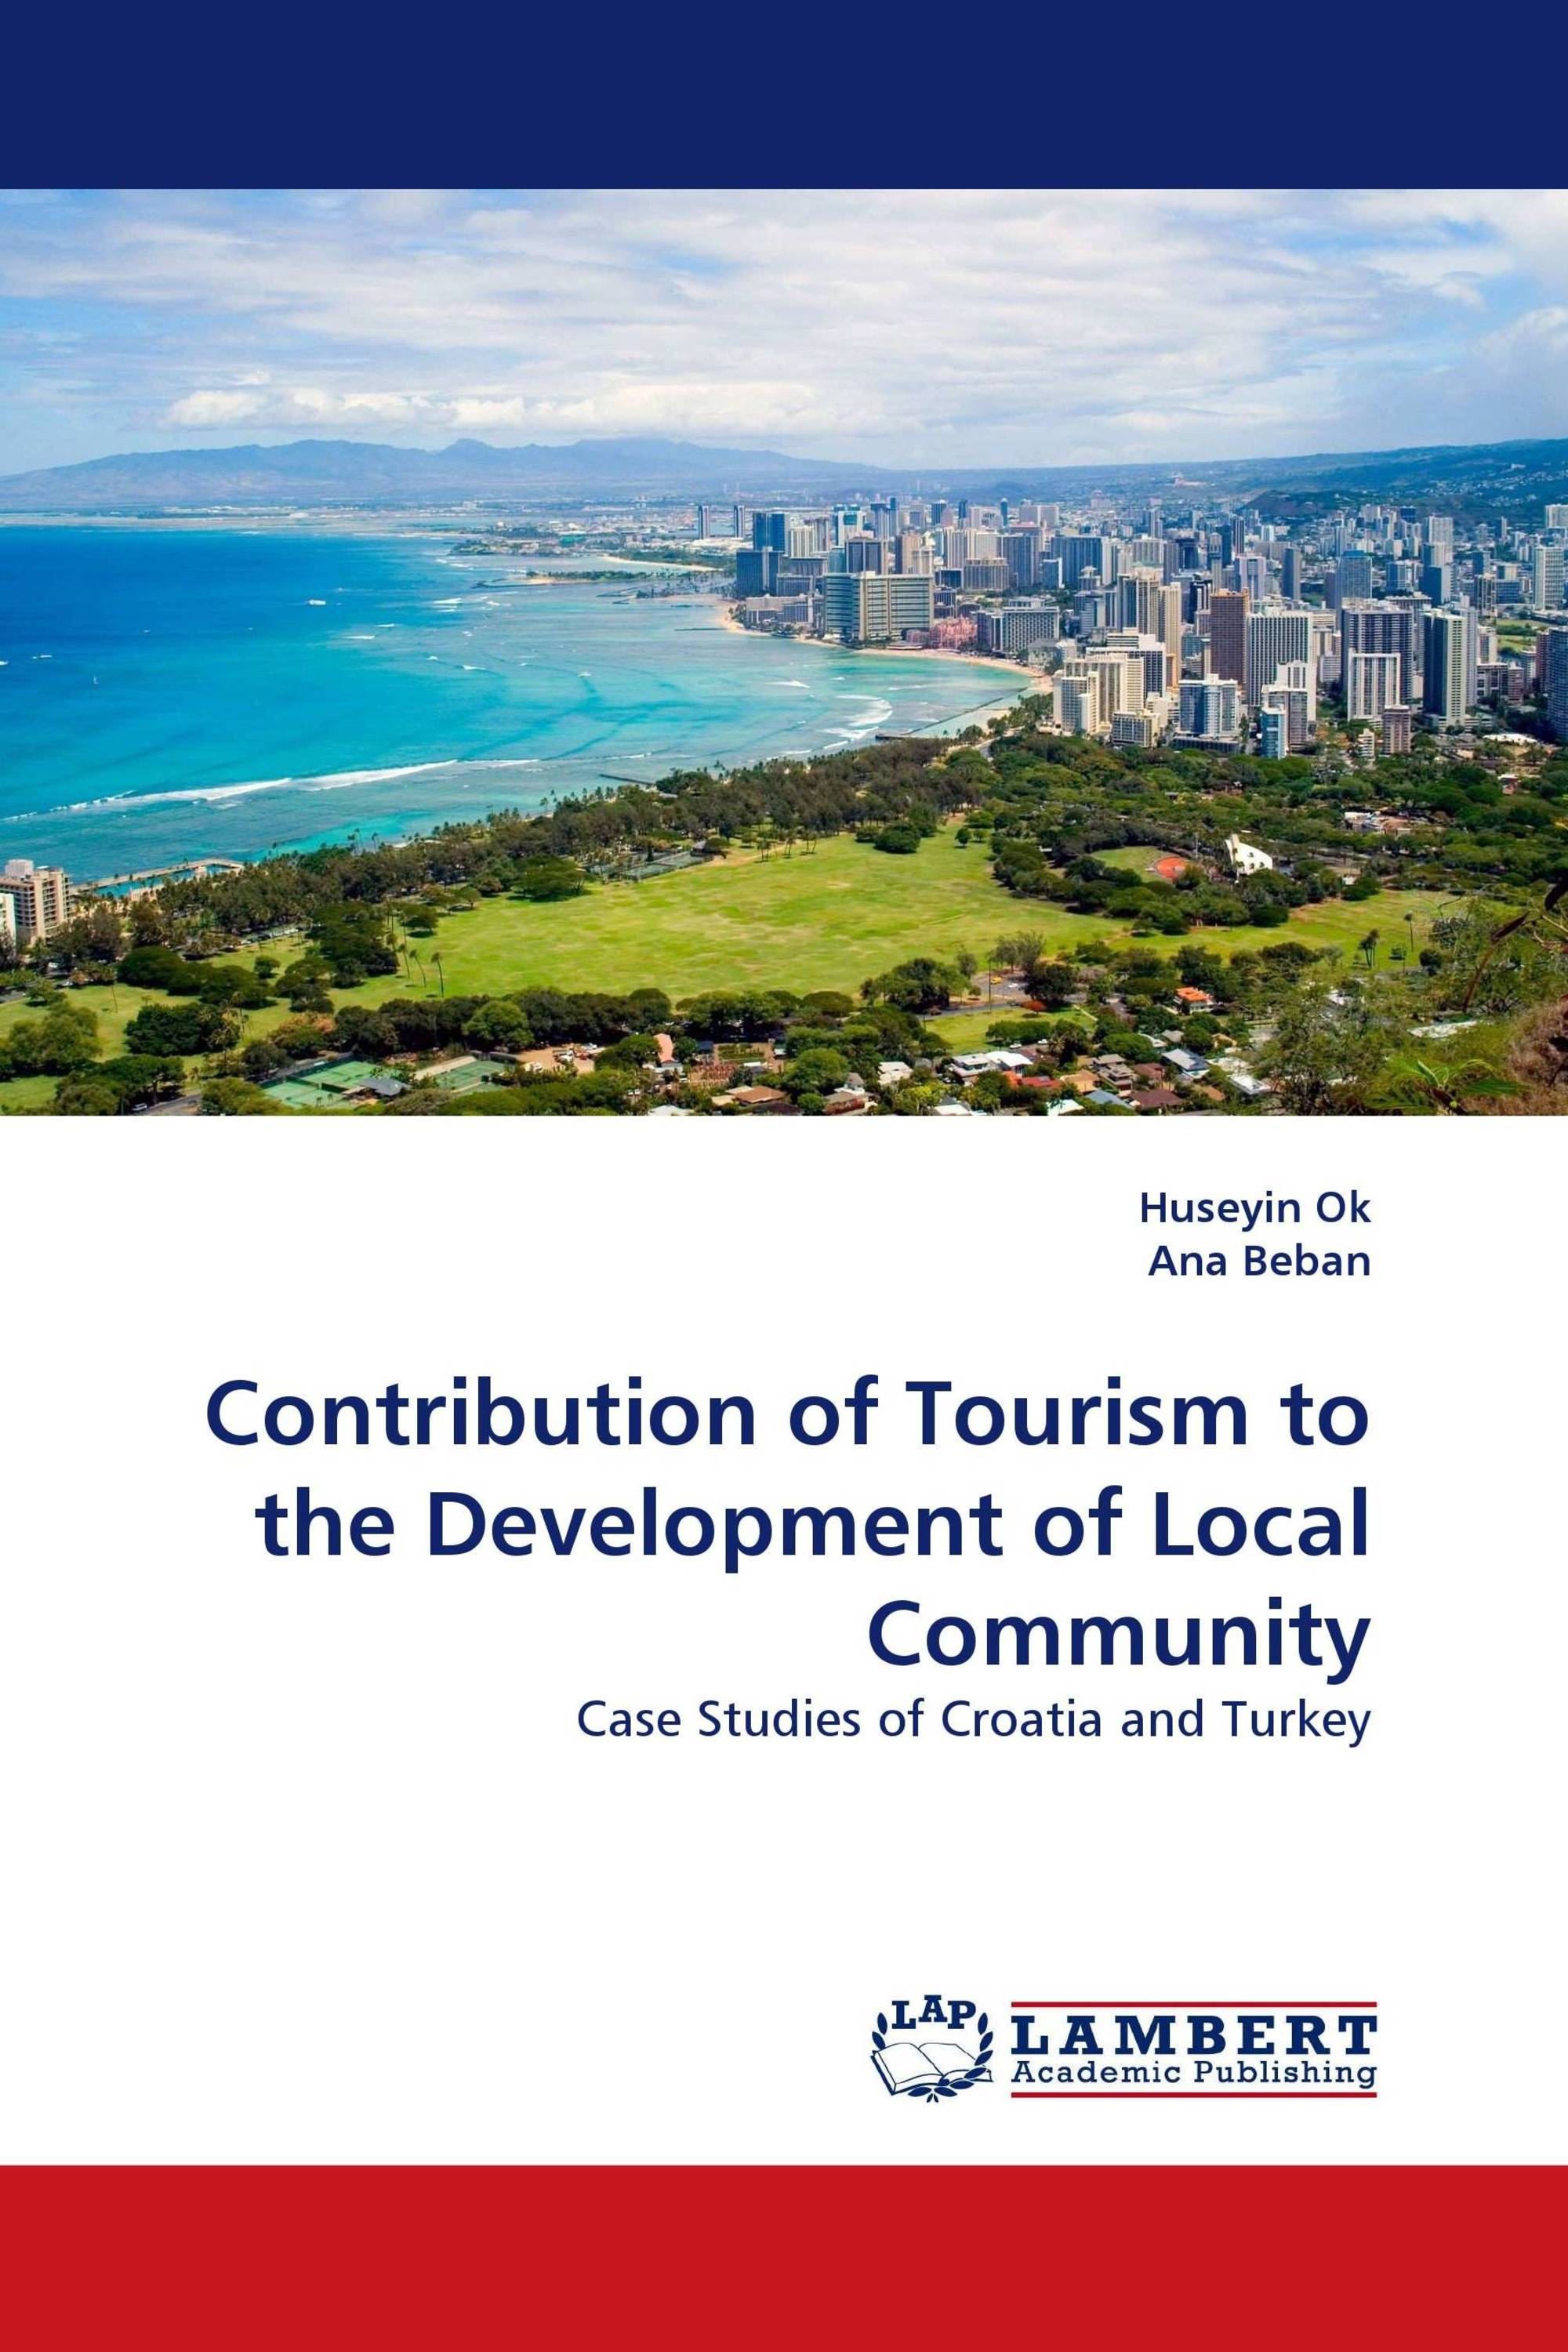 Contribution of Tourism to the Development of Local Community